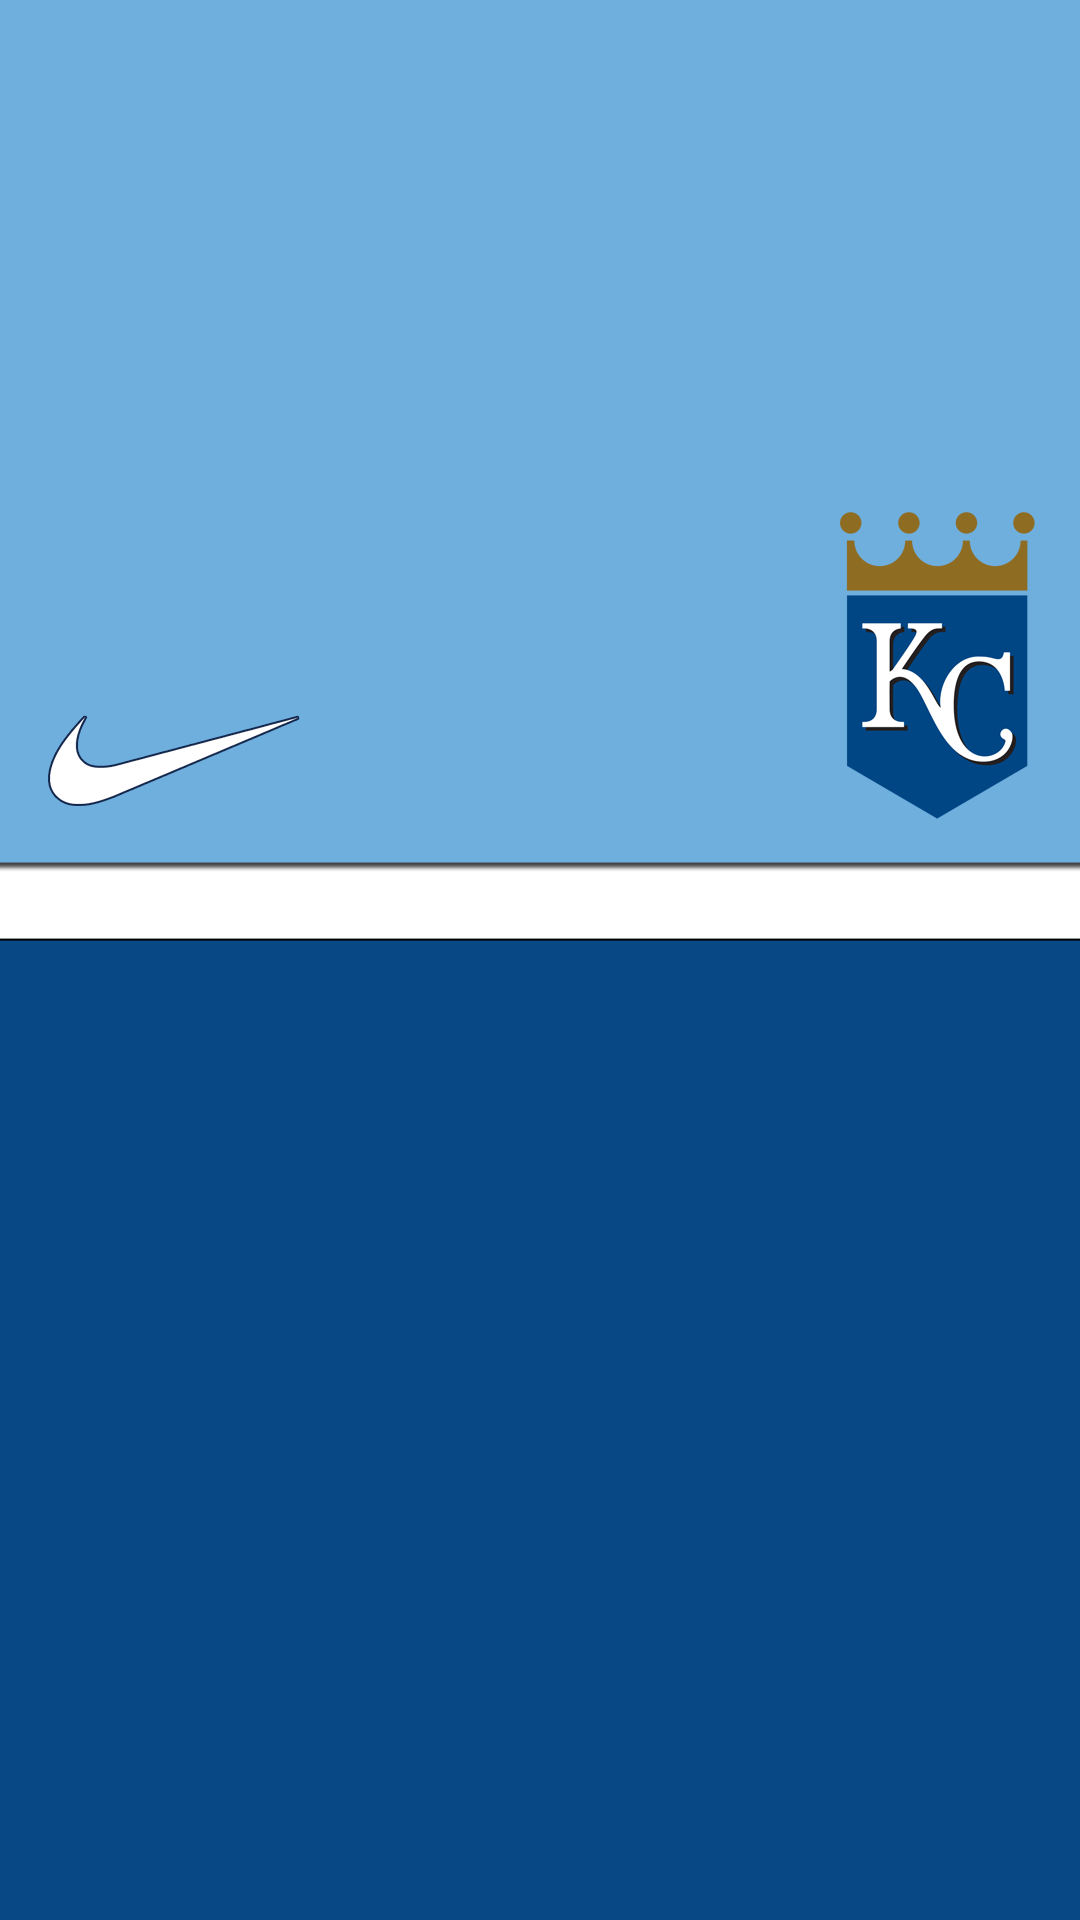 Kansas City Royals Nike Iphone Wallpaper Hd Free Desktop Royal Wallpaper City Iphone Wallpaper Nike Wallpaper